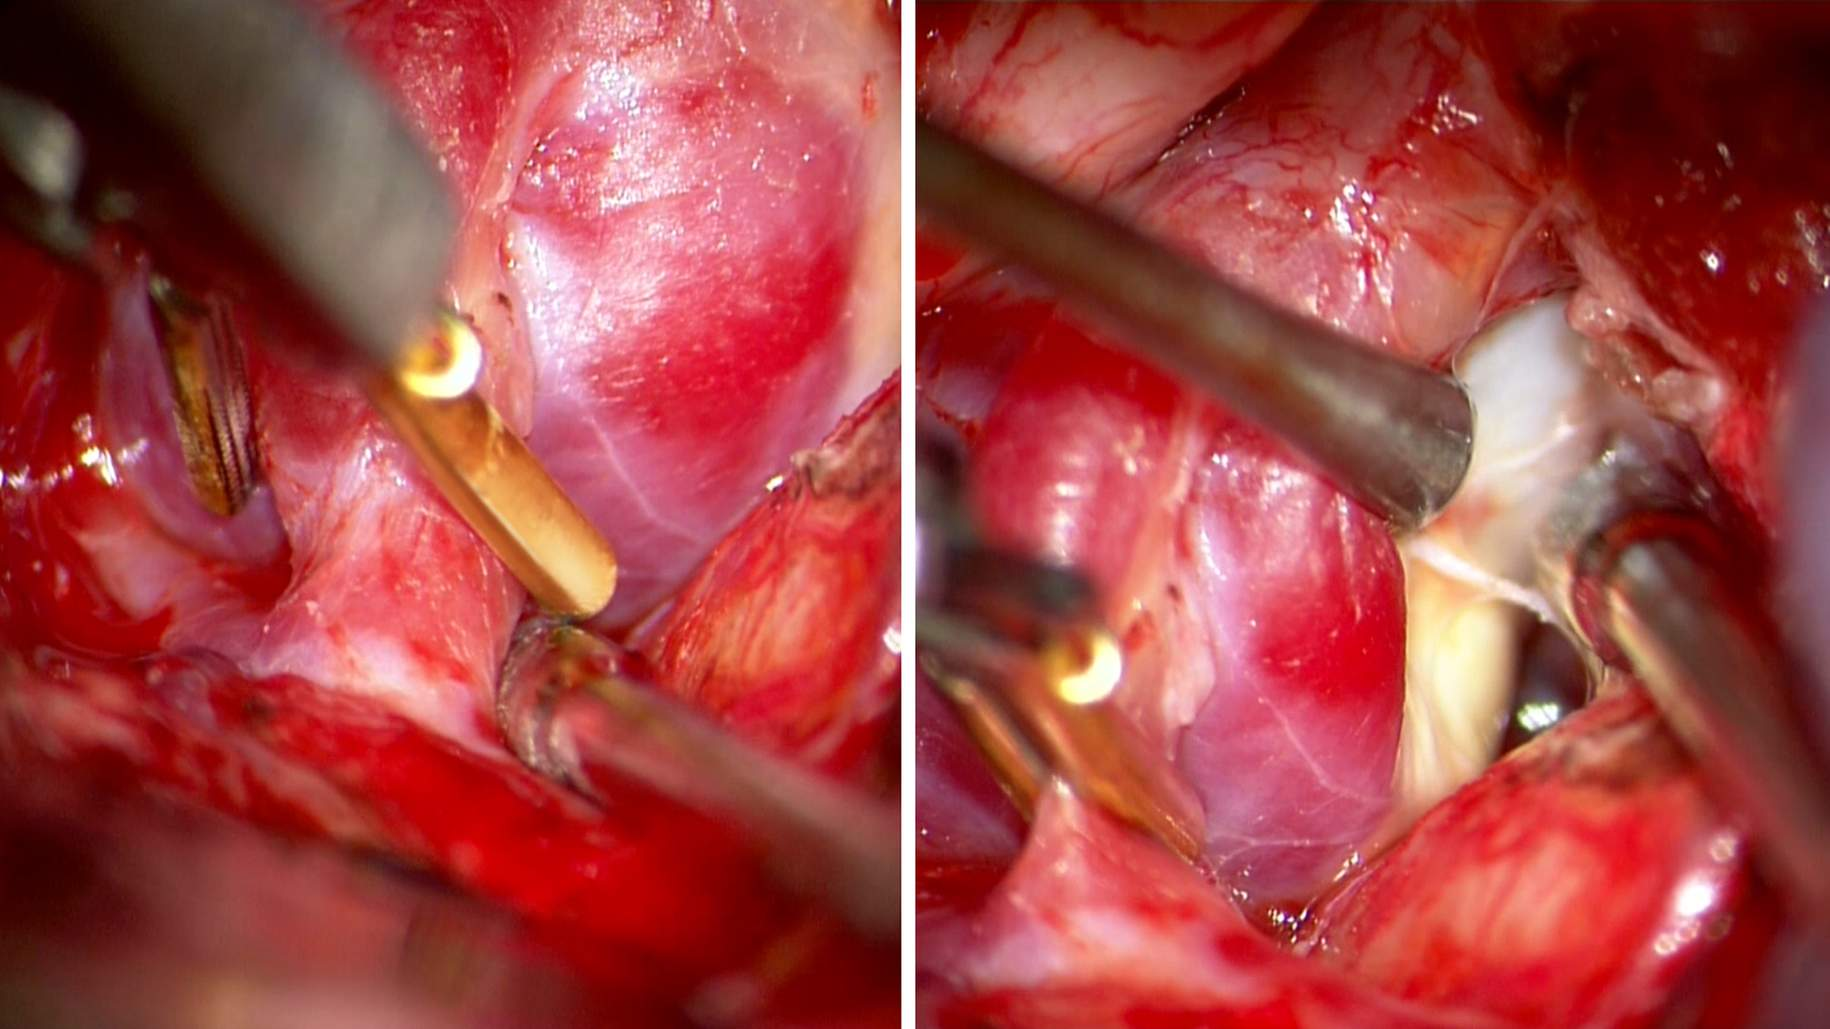 Figure 1: Distal temporary clipping is used as part of the retrograde suction decompression technique for clip ligation of a large posterior communicating artery aneurysm (left). Remarkable aneurysm deflation facilitates safe and effective permanent clip application (right).